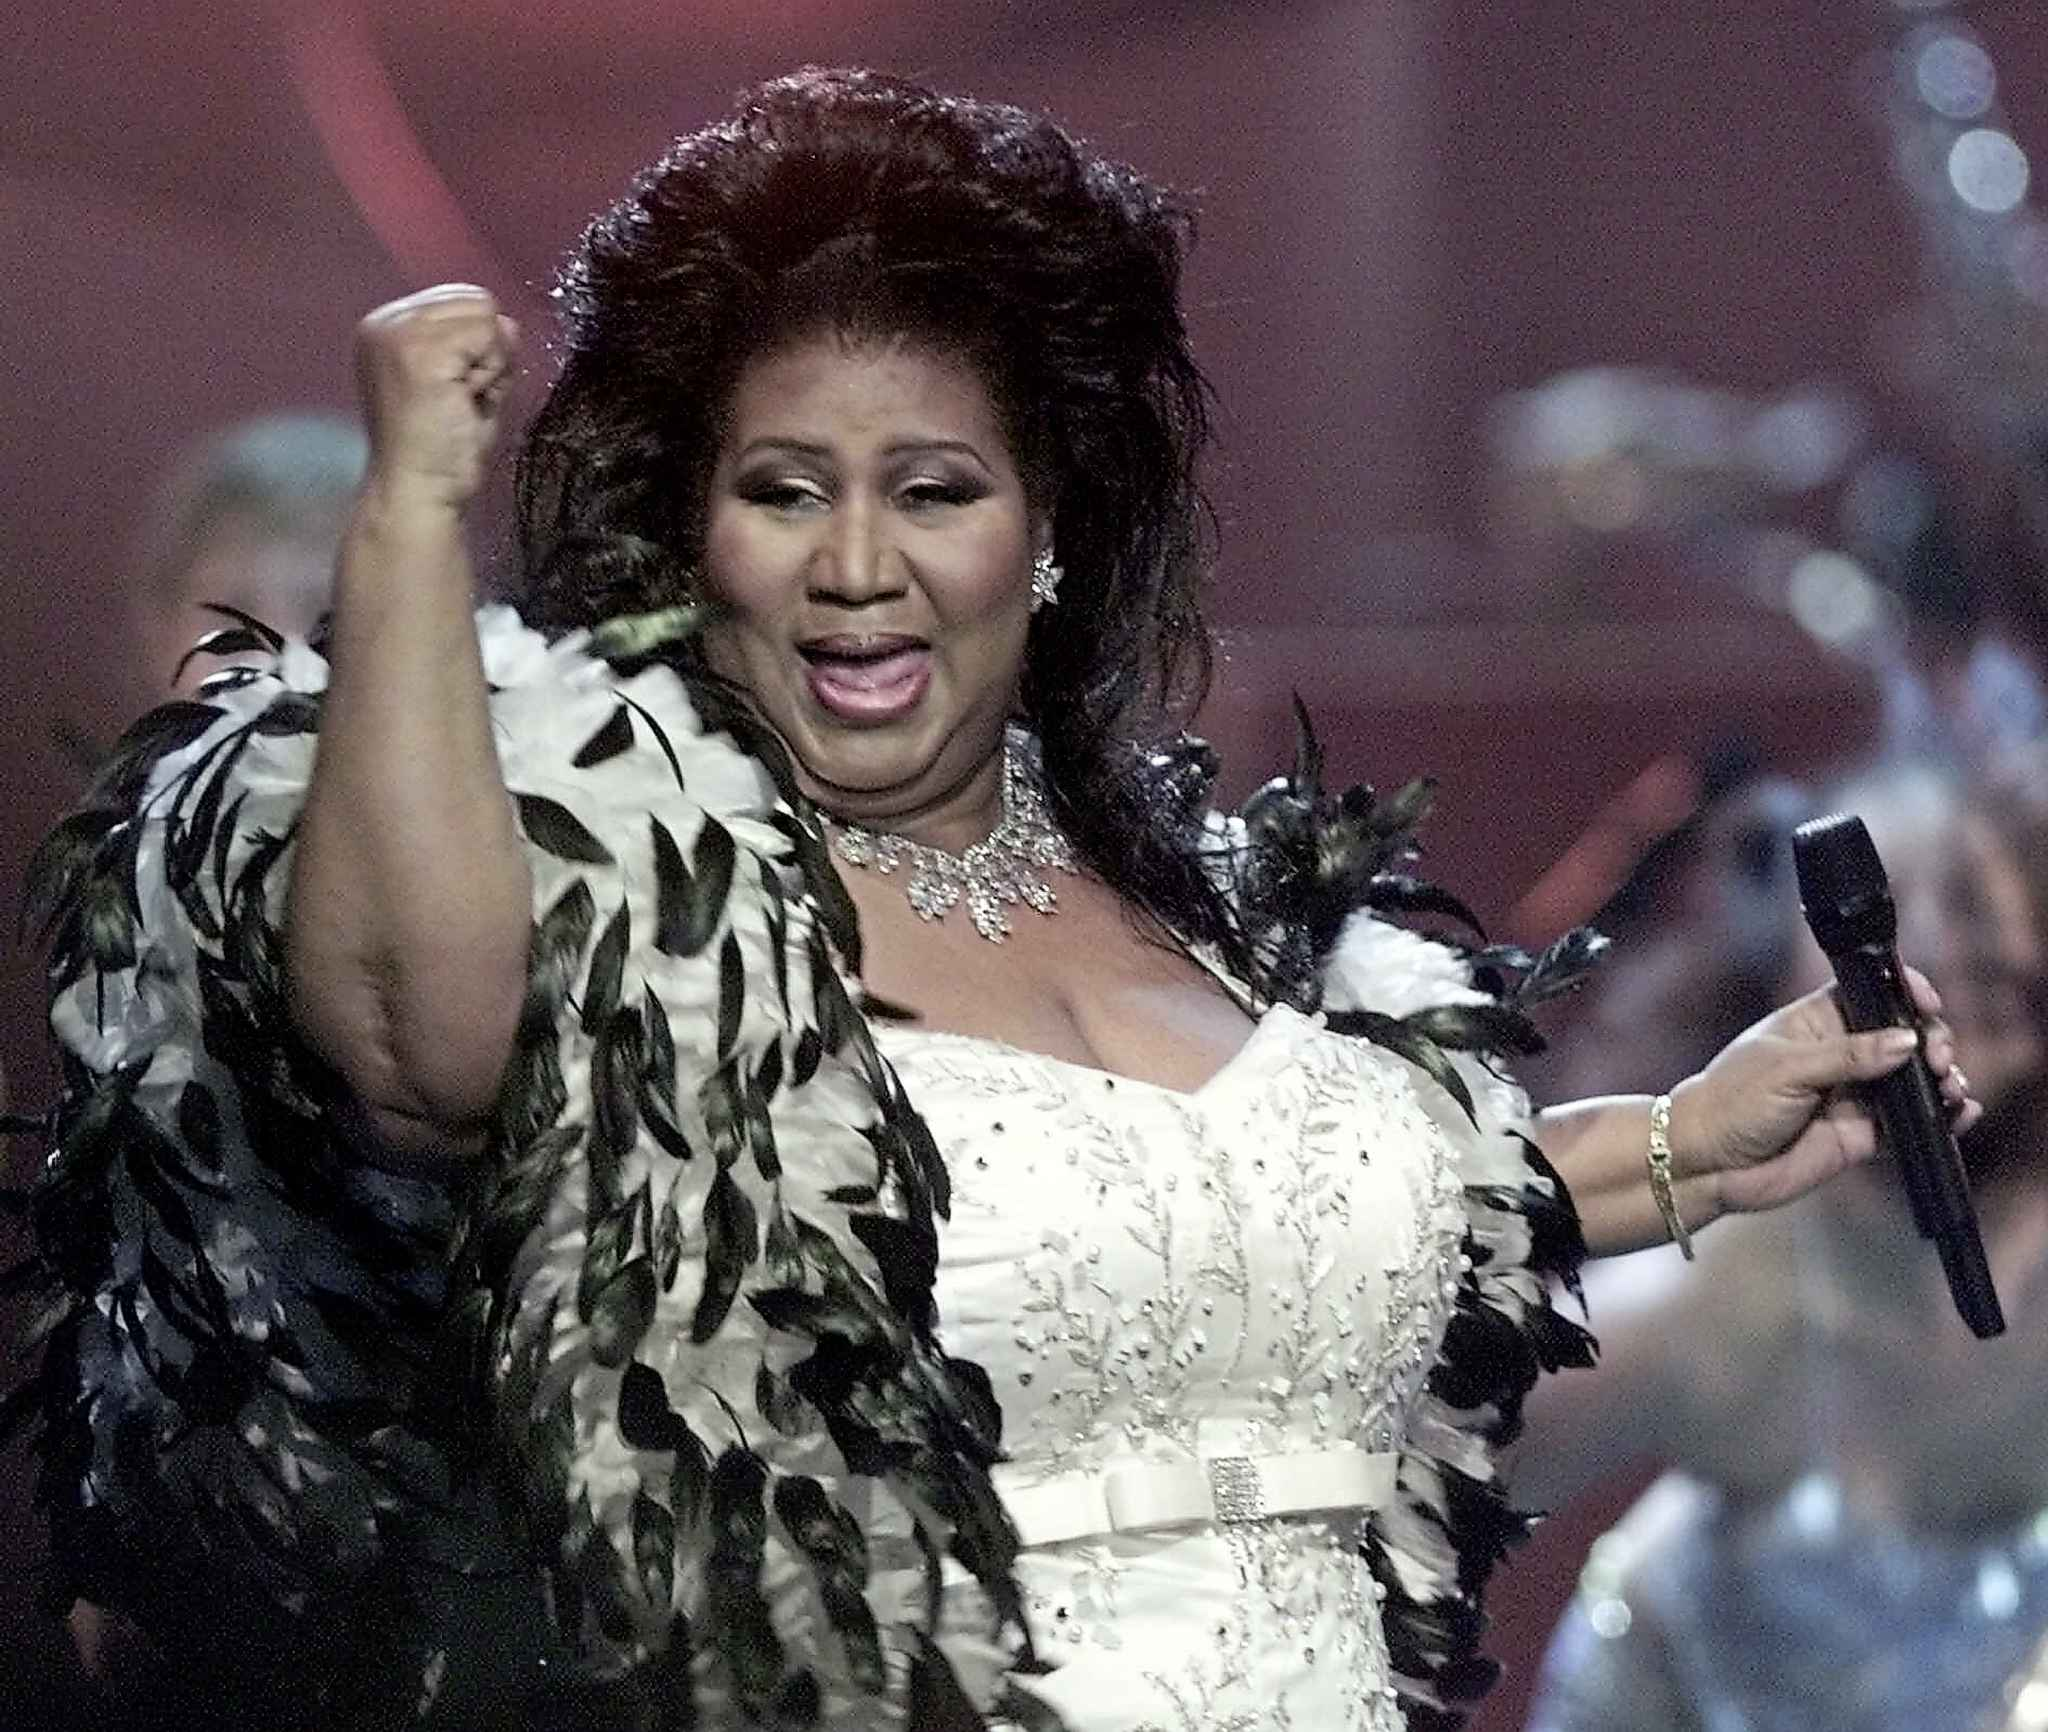 Franklin performs during the VH1 Divas 2001: The One and Only Aretha Franklin tribute in New York. (Suzanne Plunkett / Associated Press files)